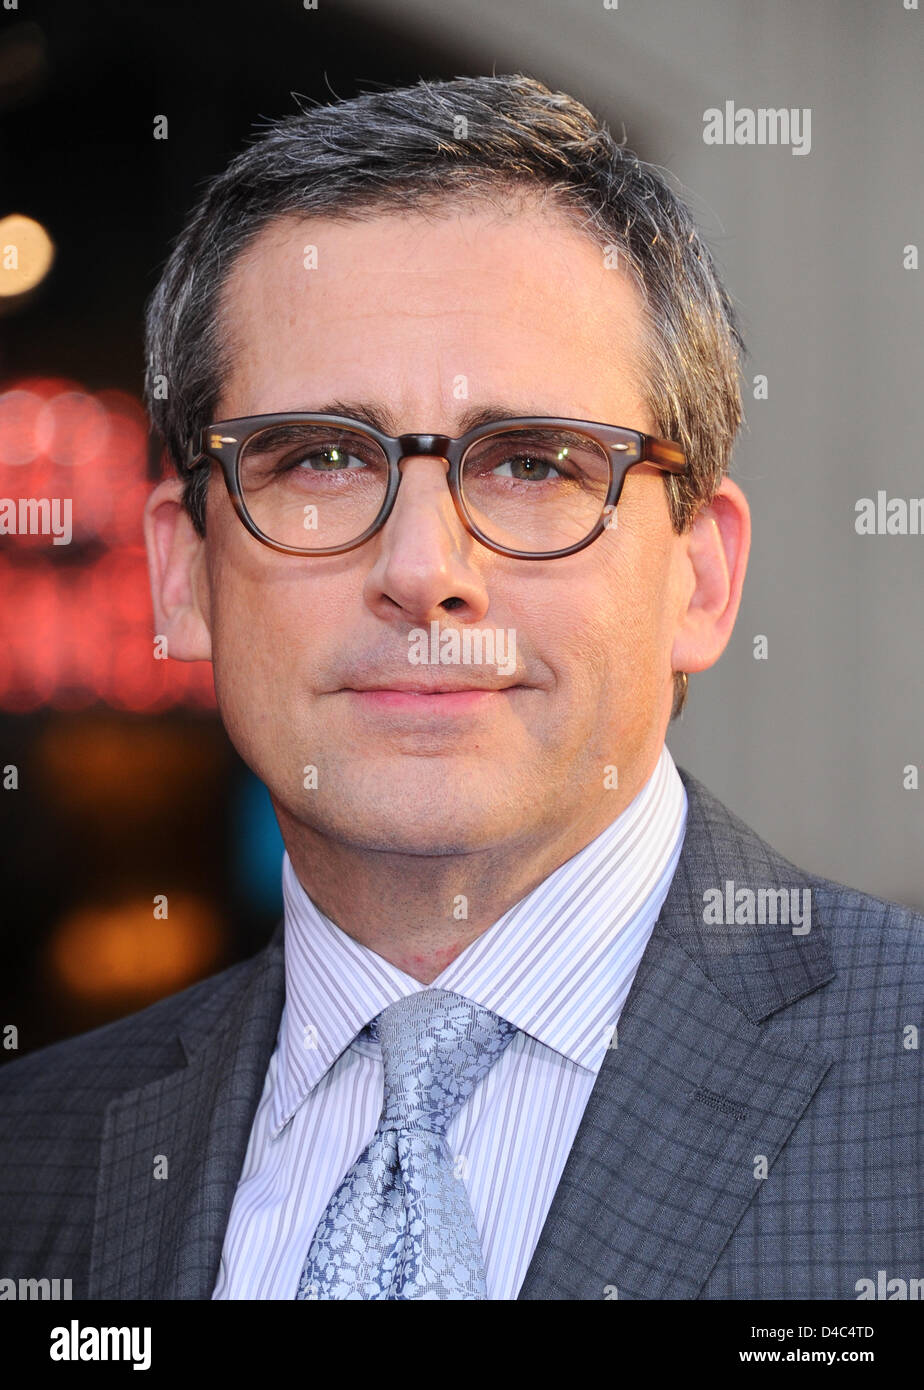 Los Angeles, USA. 11th March 2013. Steve Carell arrives at the film premiere for The Incredible Burt Wonderstone - Stock Image